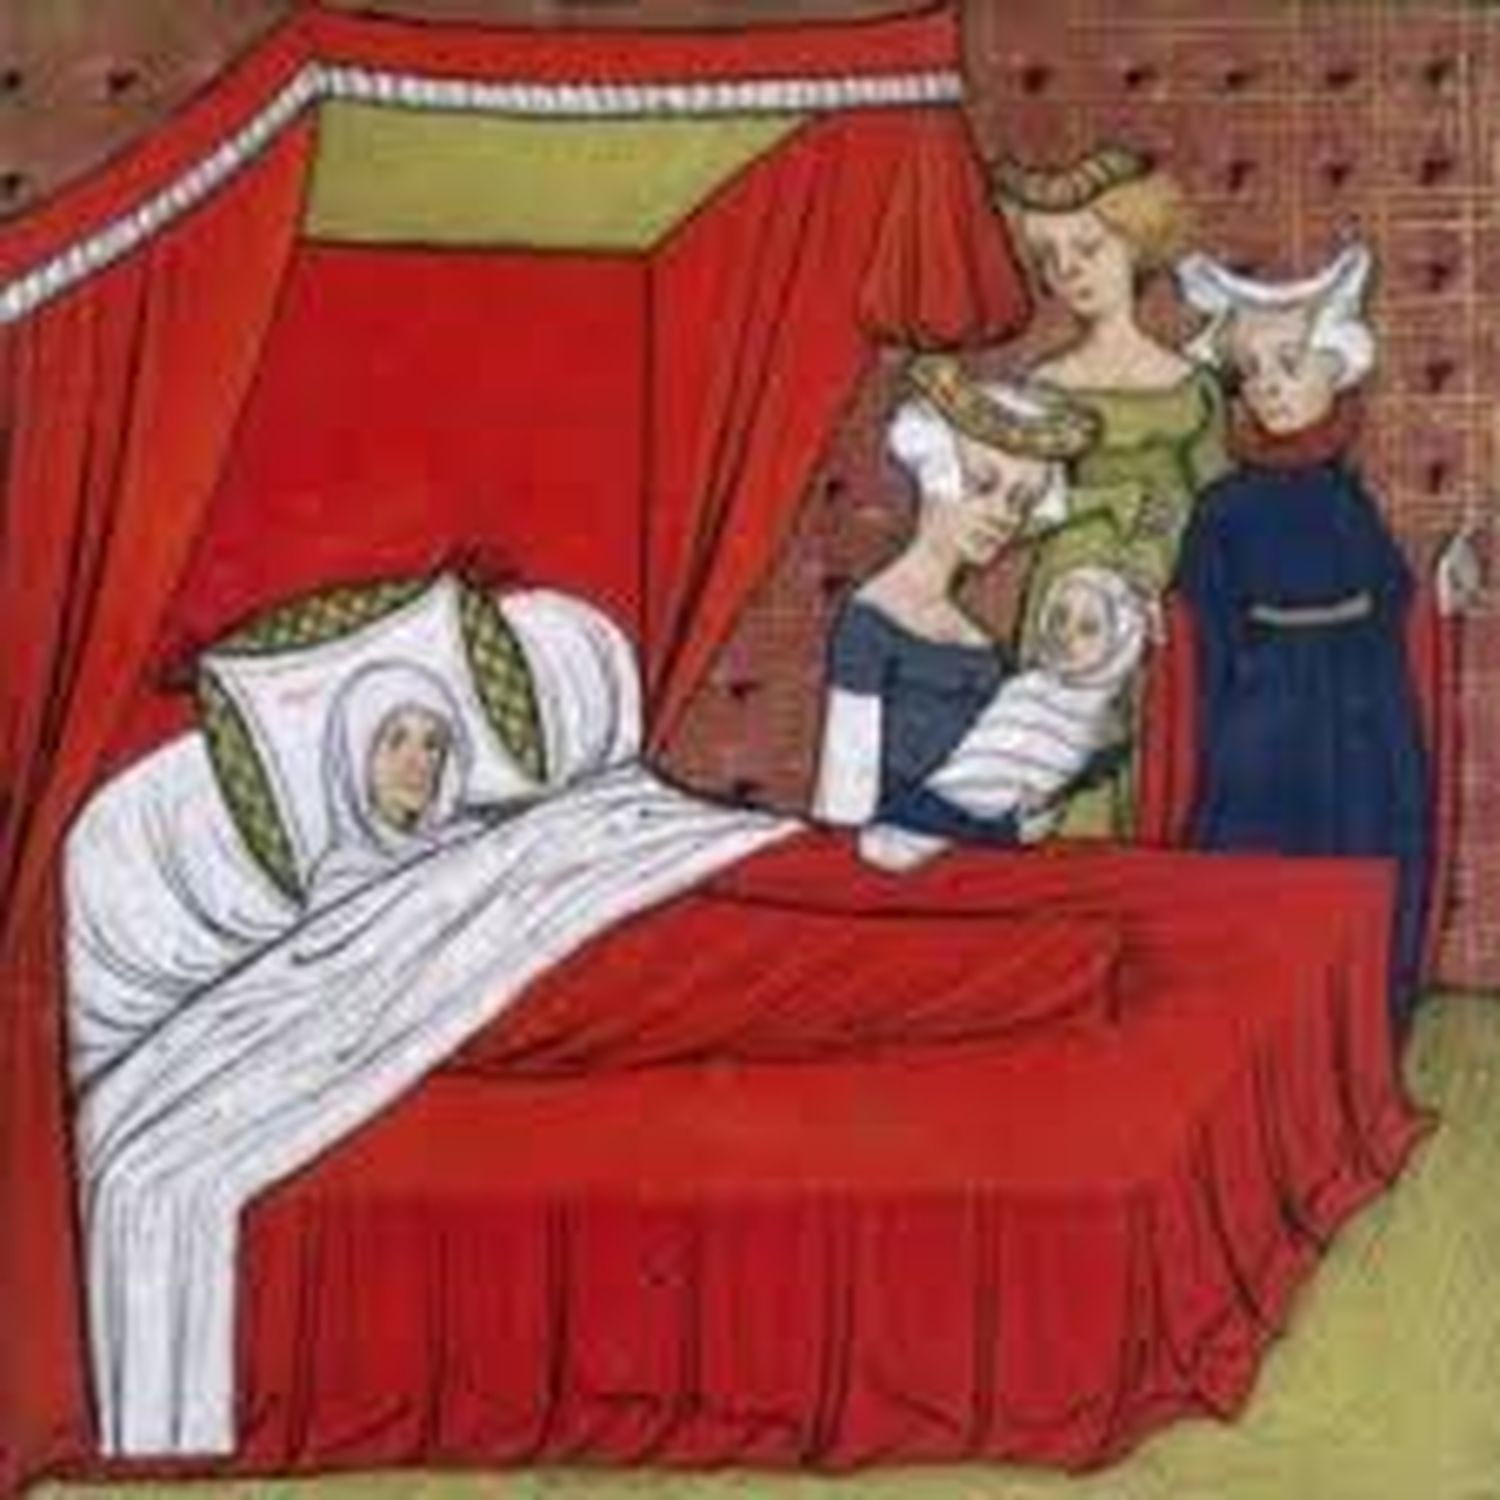 Episode 024: Pregnancy and Childbirth in Medieval England